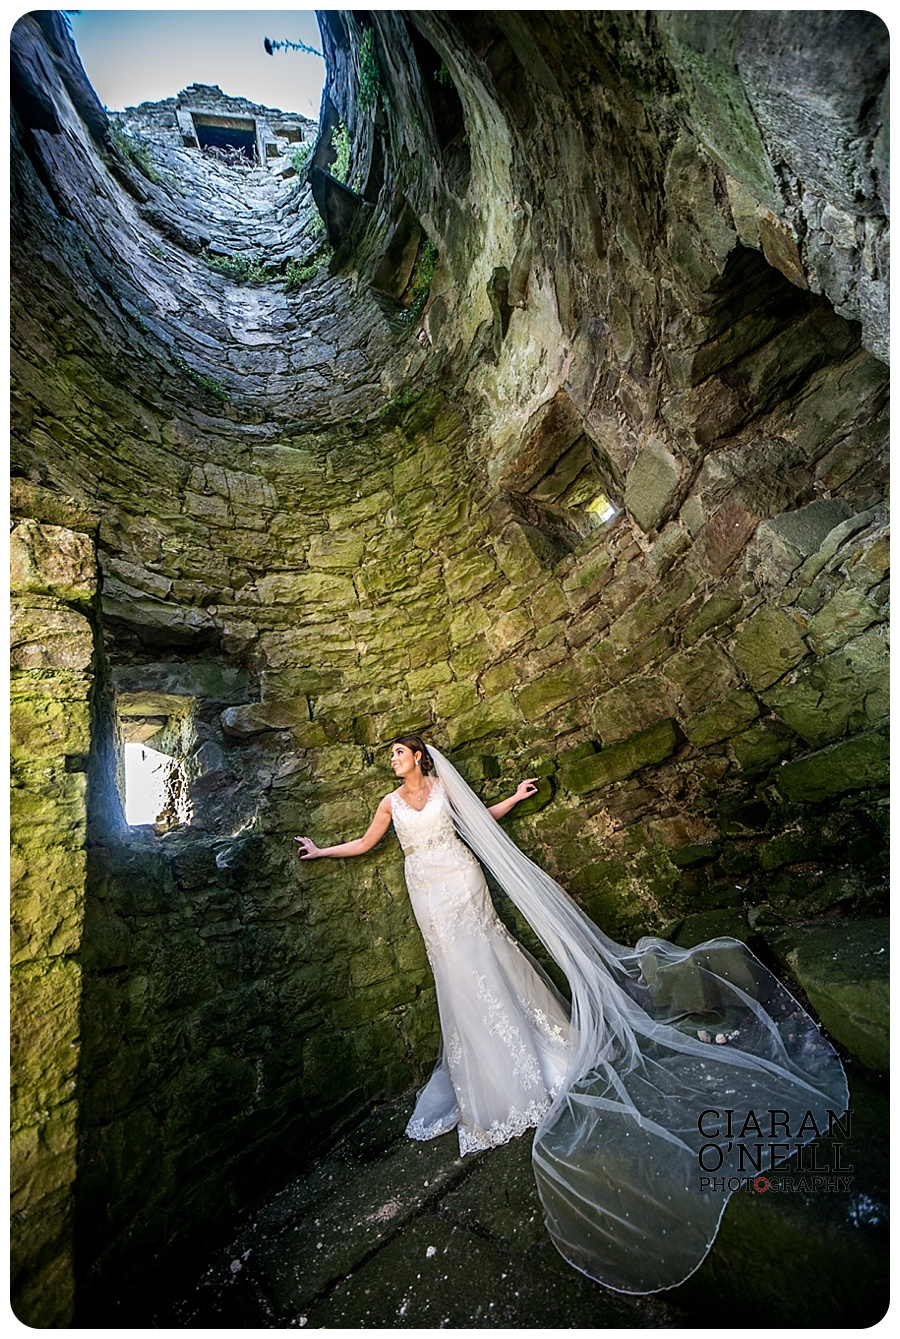 Hannah & Christopher's wedding at Lough Erne Resort & Spa by Ciaran O'Neill Photography 19